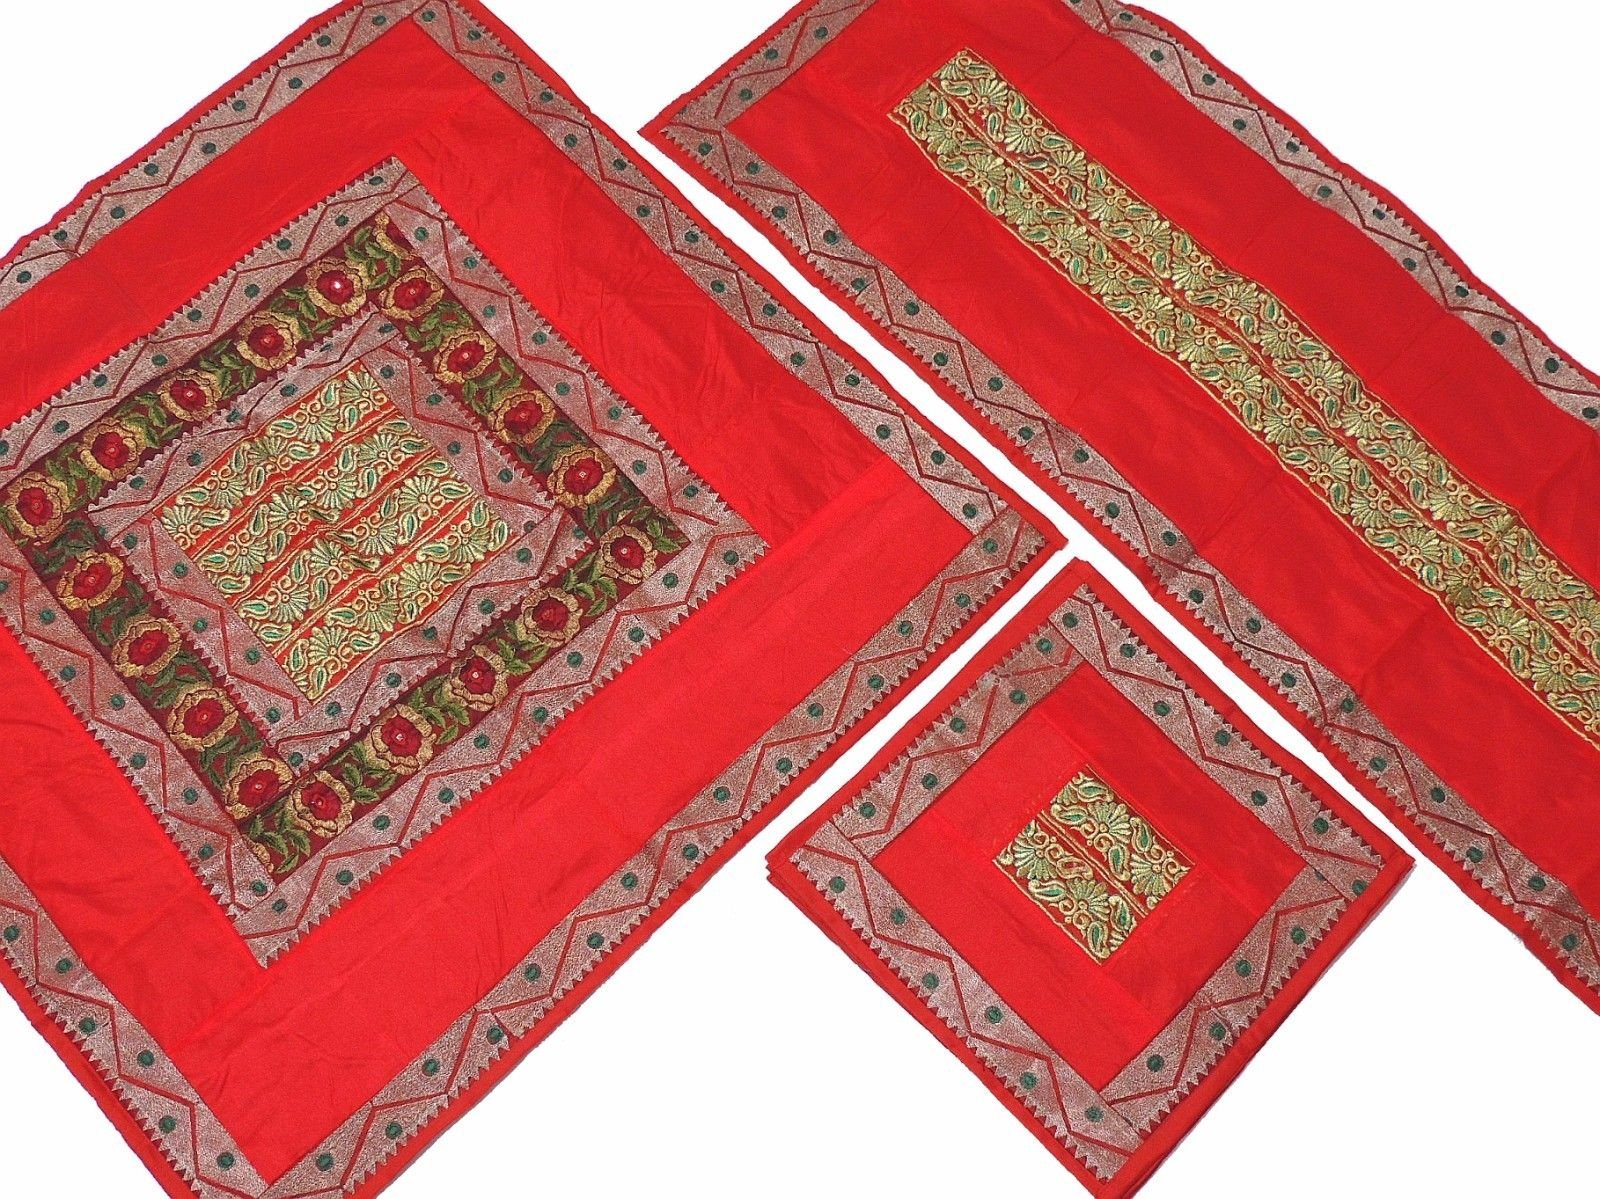 NovaHaat Red Pretty Embroidered Tablecloth, Table Runner and 4 Placemats Set in Dupioni Art Silk from India ~ Tablecloth - 40 Inch, Runner - 60 Inch x 20 Inch, Placemats - 16 Inch